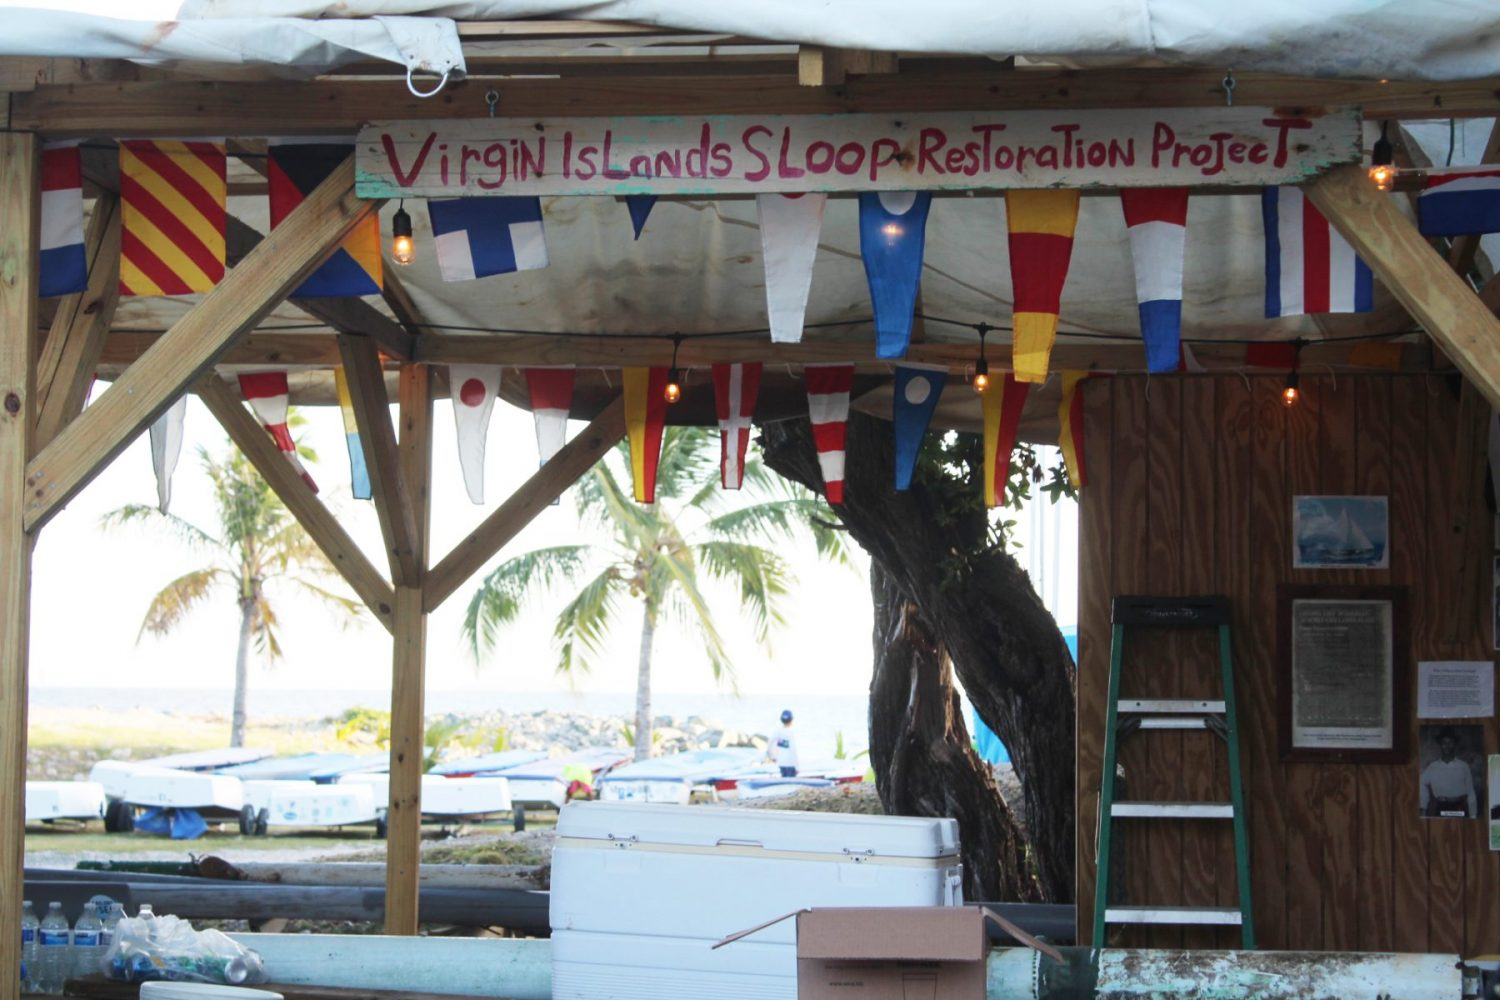 The Virgin Islands Sloop Restoration Project building in Nanny Cay opened shop.